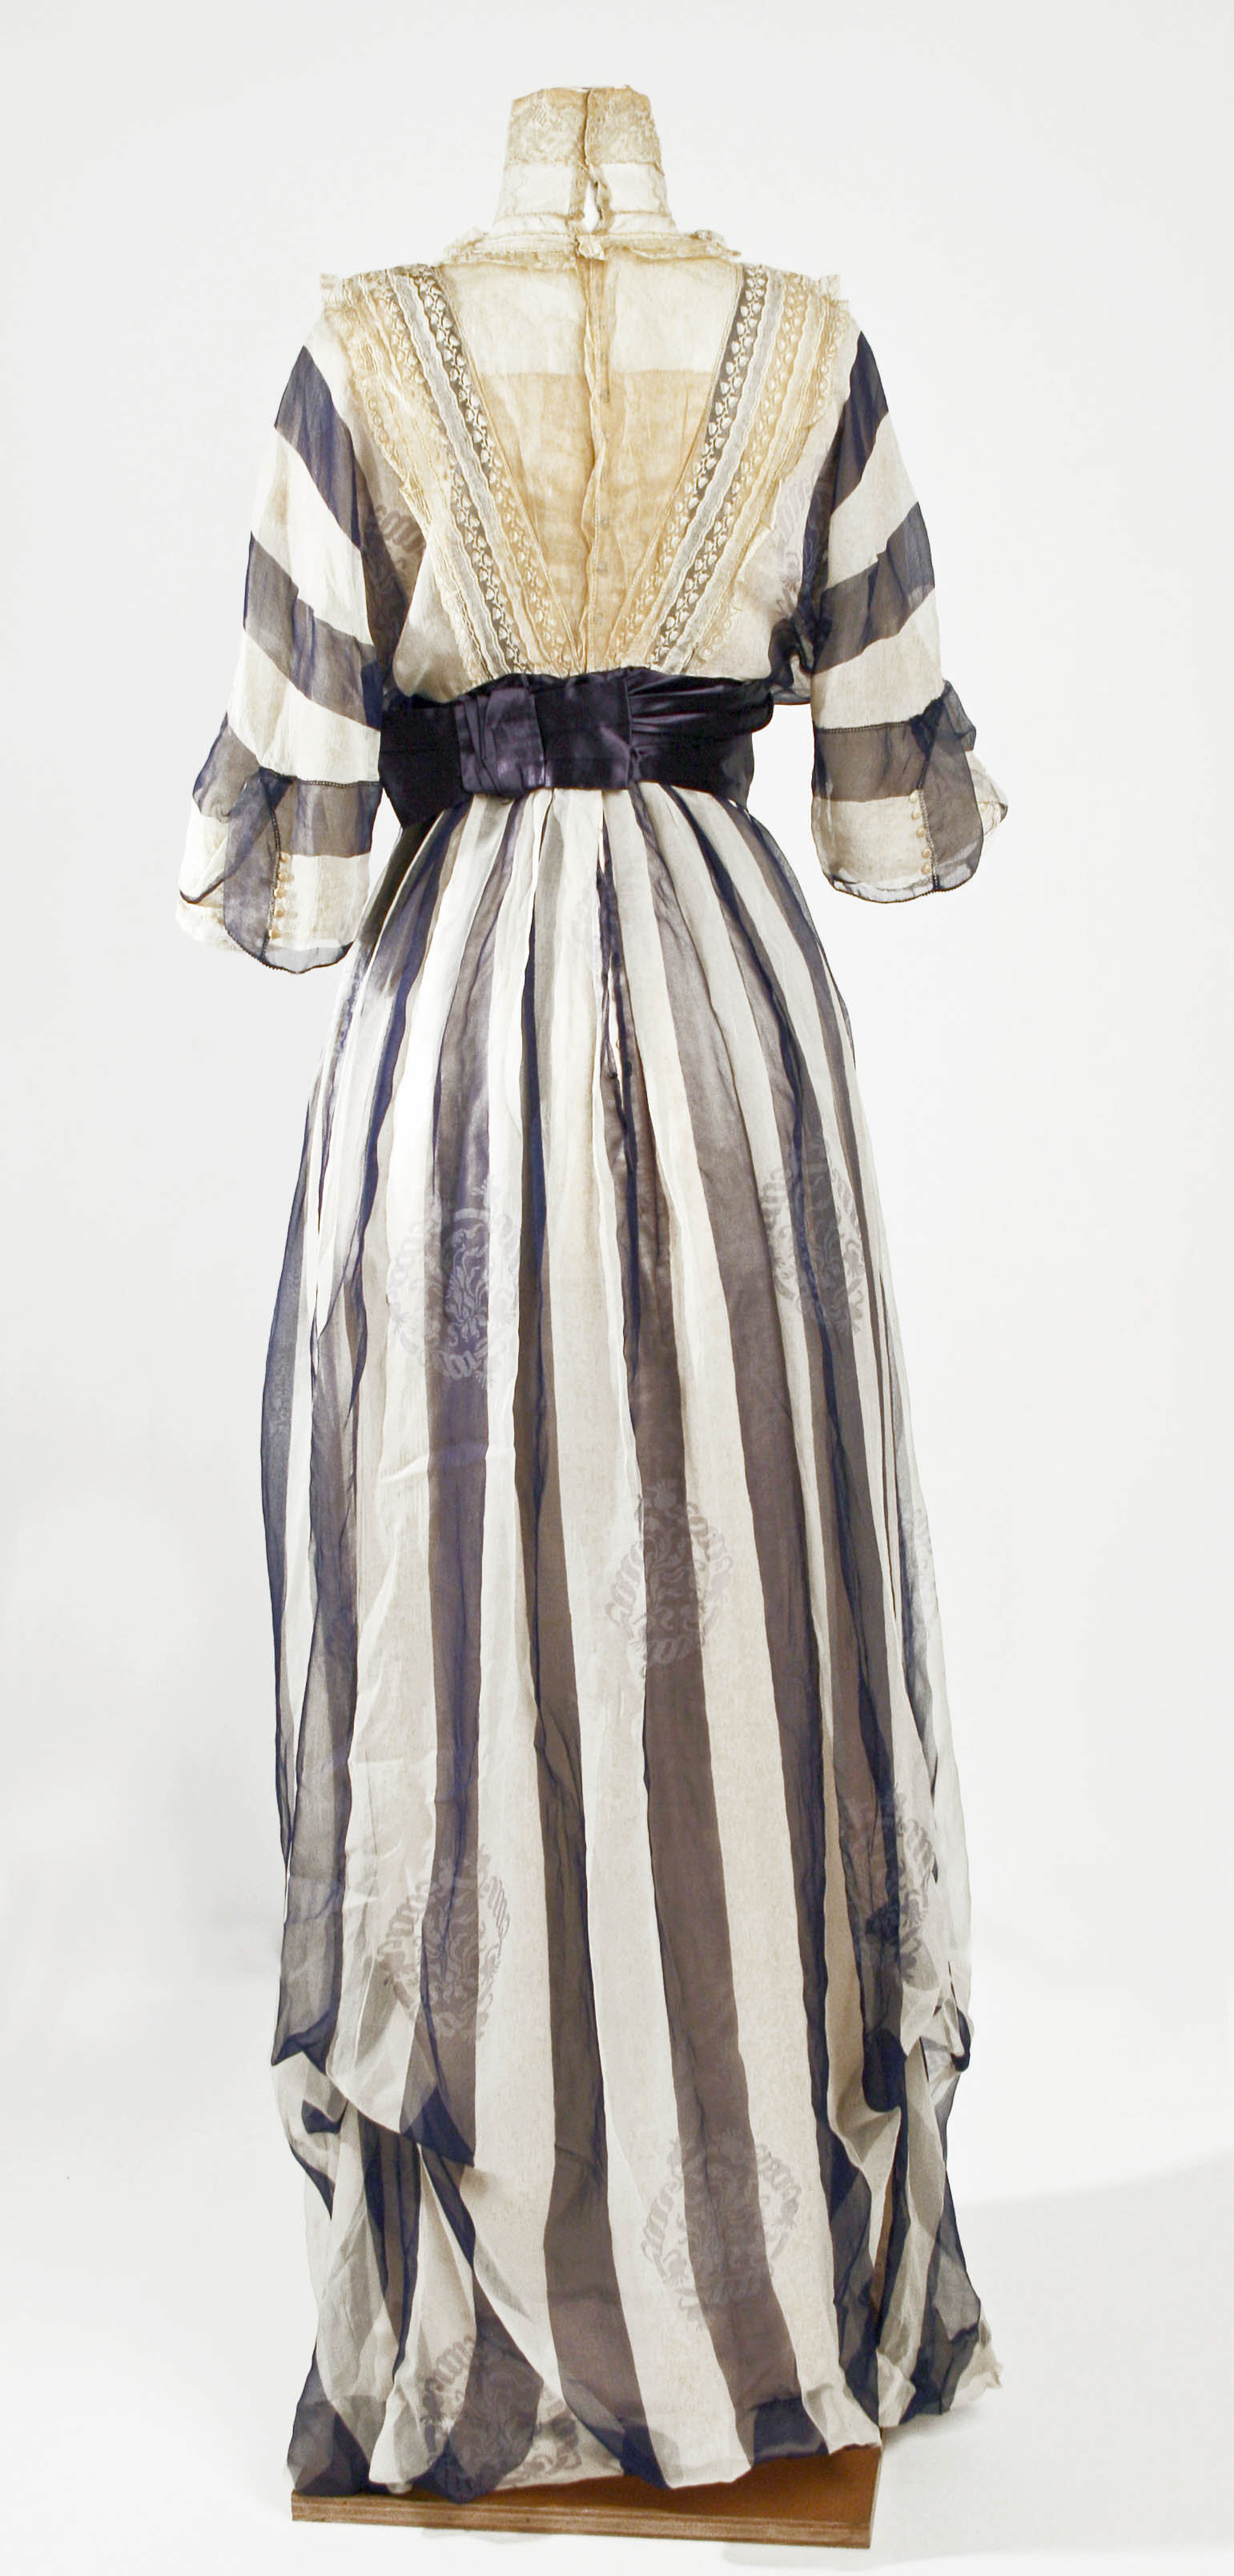 Afternoon dress, Jeanne Hallée (French, 1880–1914), 1912, French, silk, Metropolitan Museum of Art, C.I.49.2.4 detail